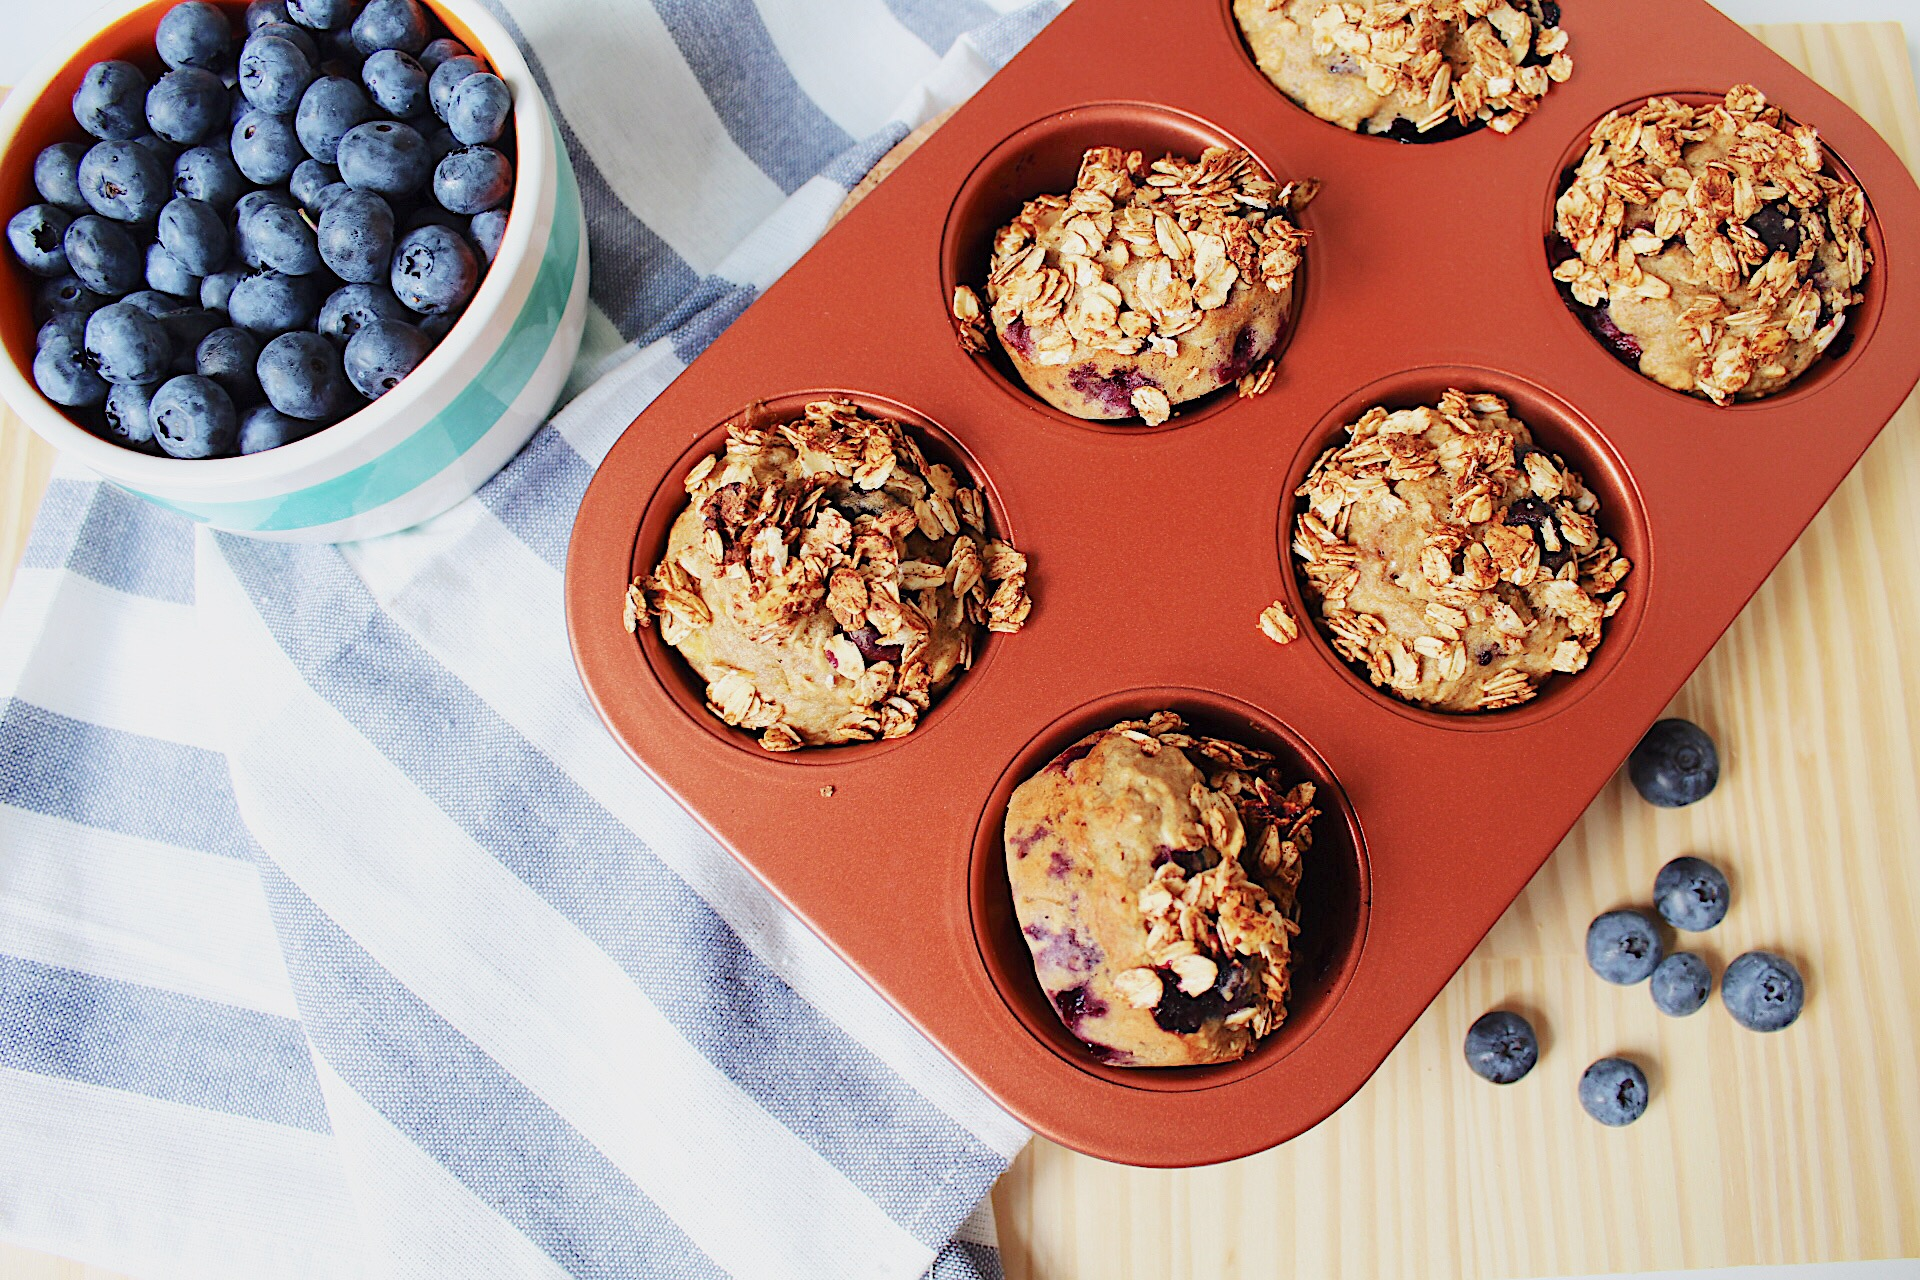 blueberry muffin8.JPG